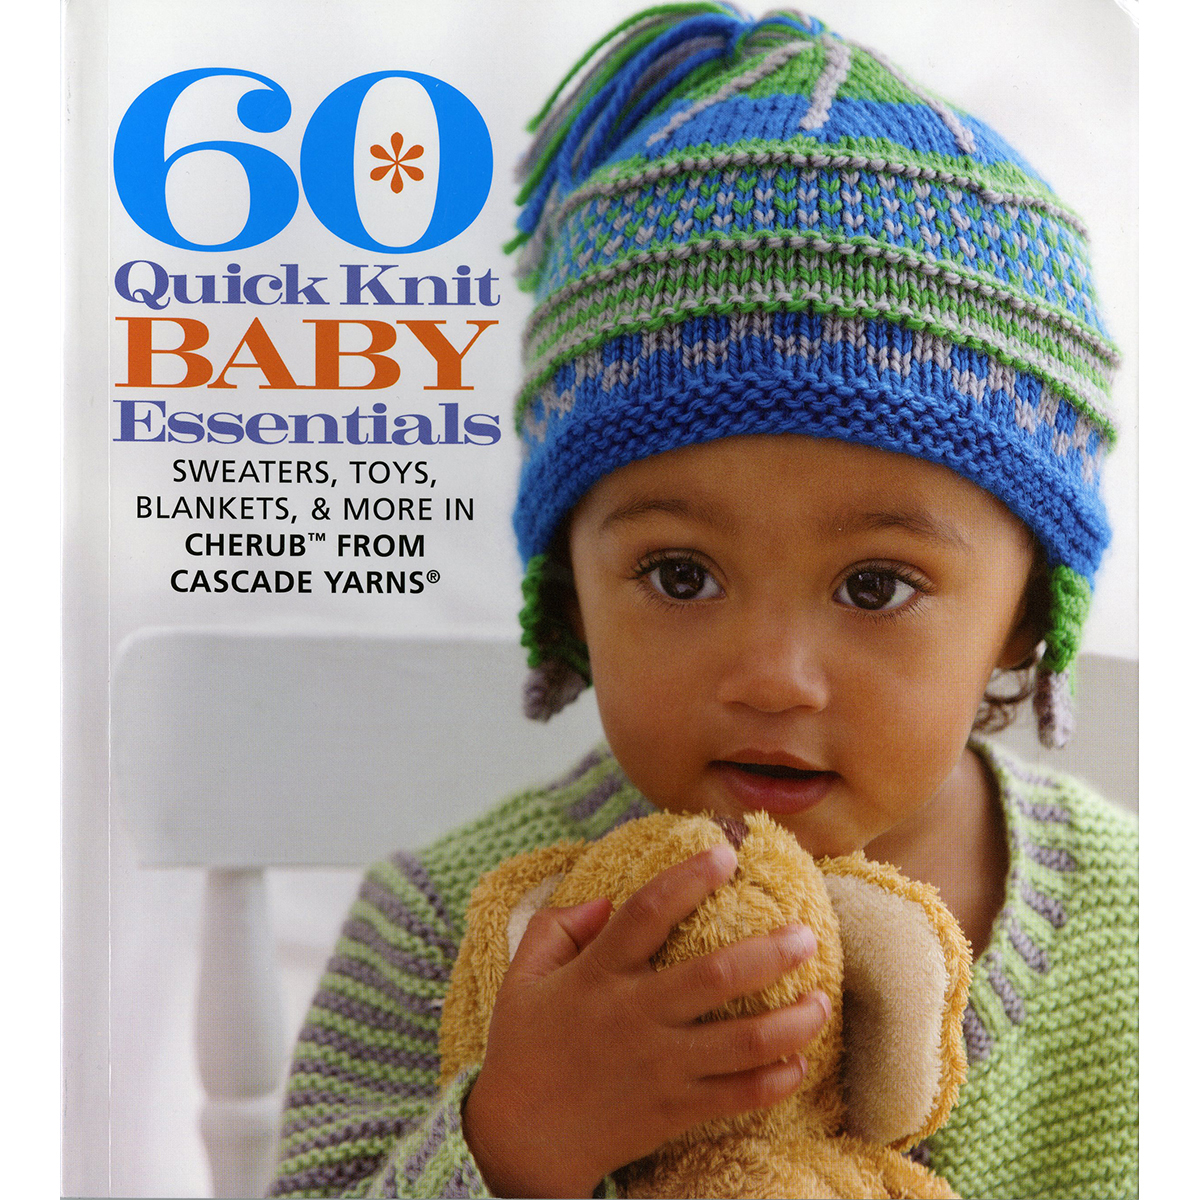 Knitting Essentials For Baby : Sixth springs books quick knit baby essentials